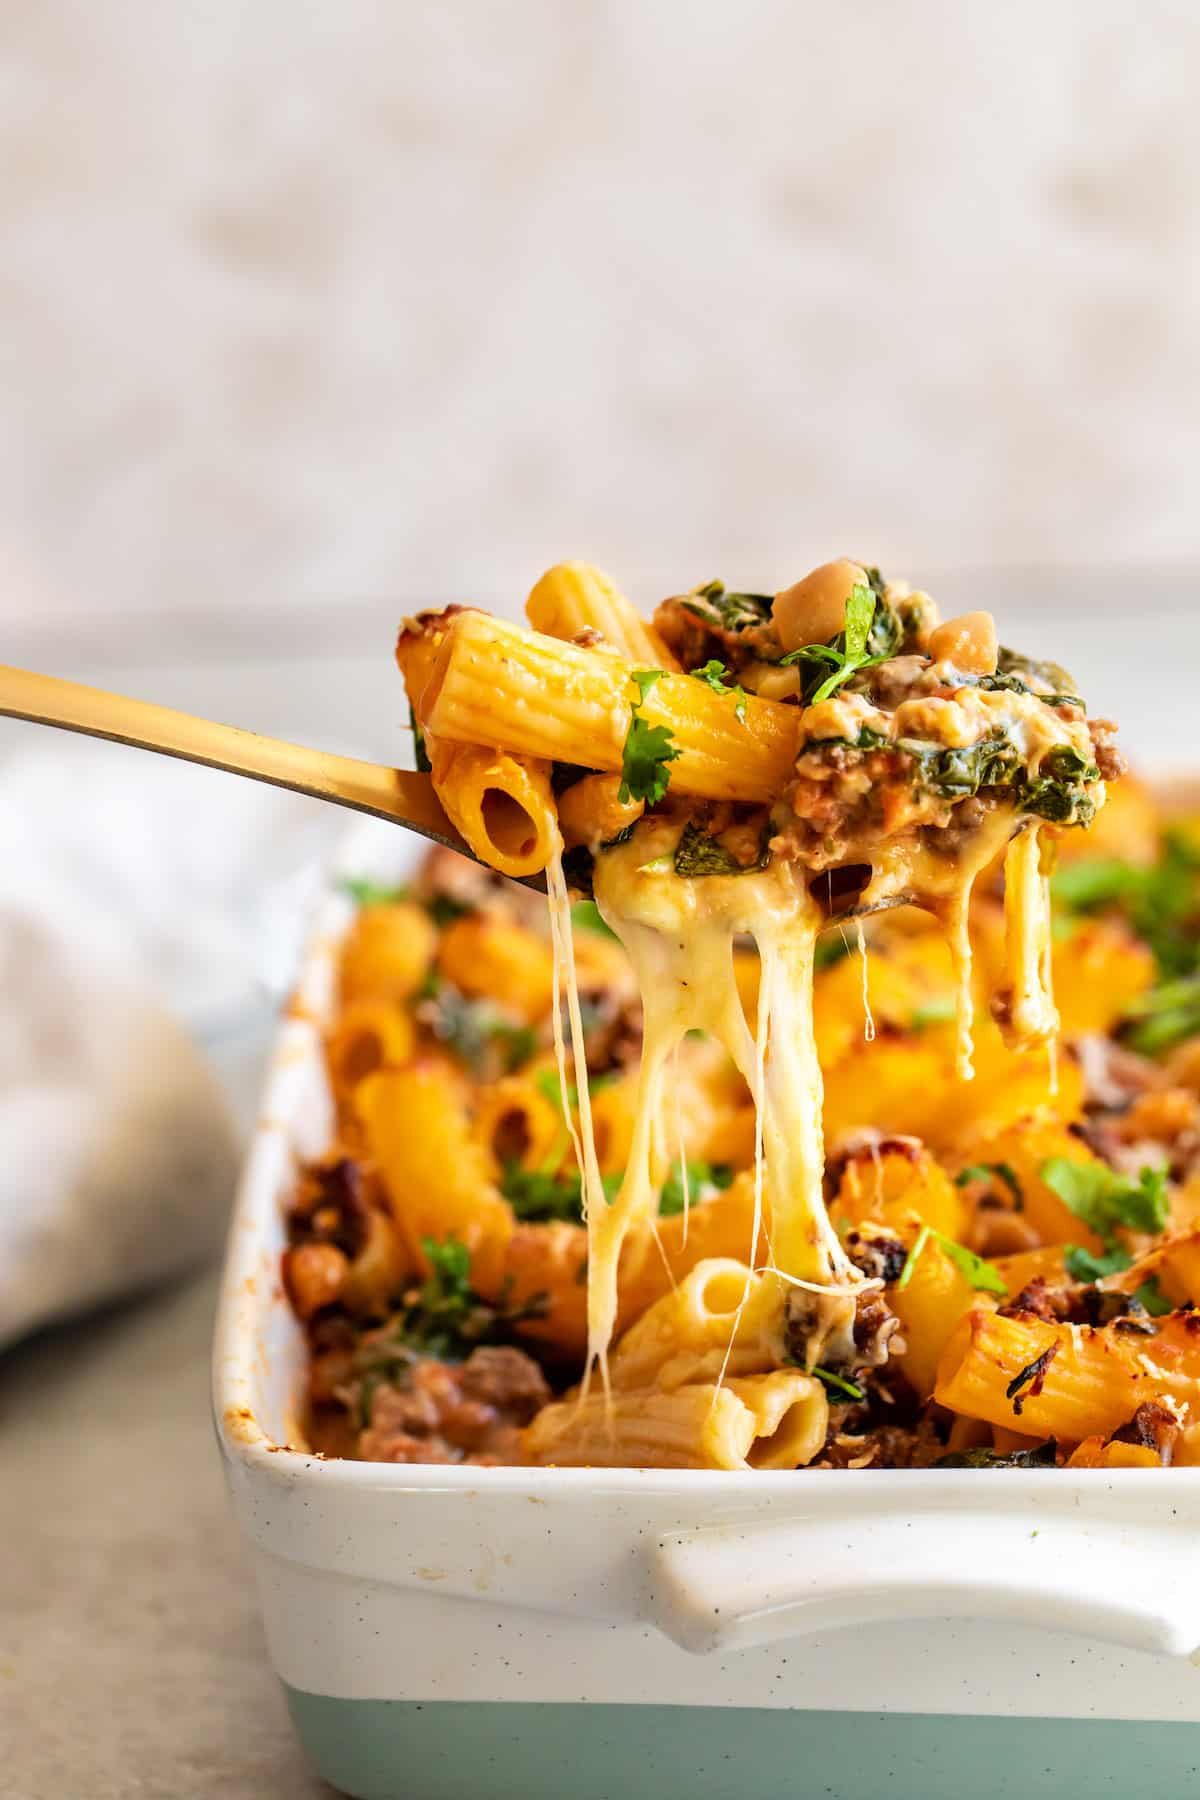 A Spoonful of Rigatoni Casserole Being Lifted From the Pan